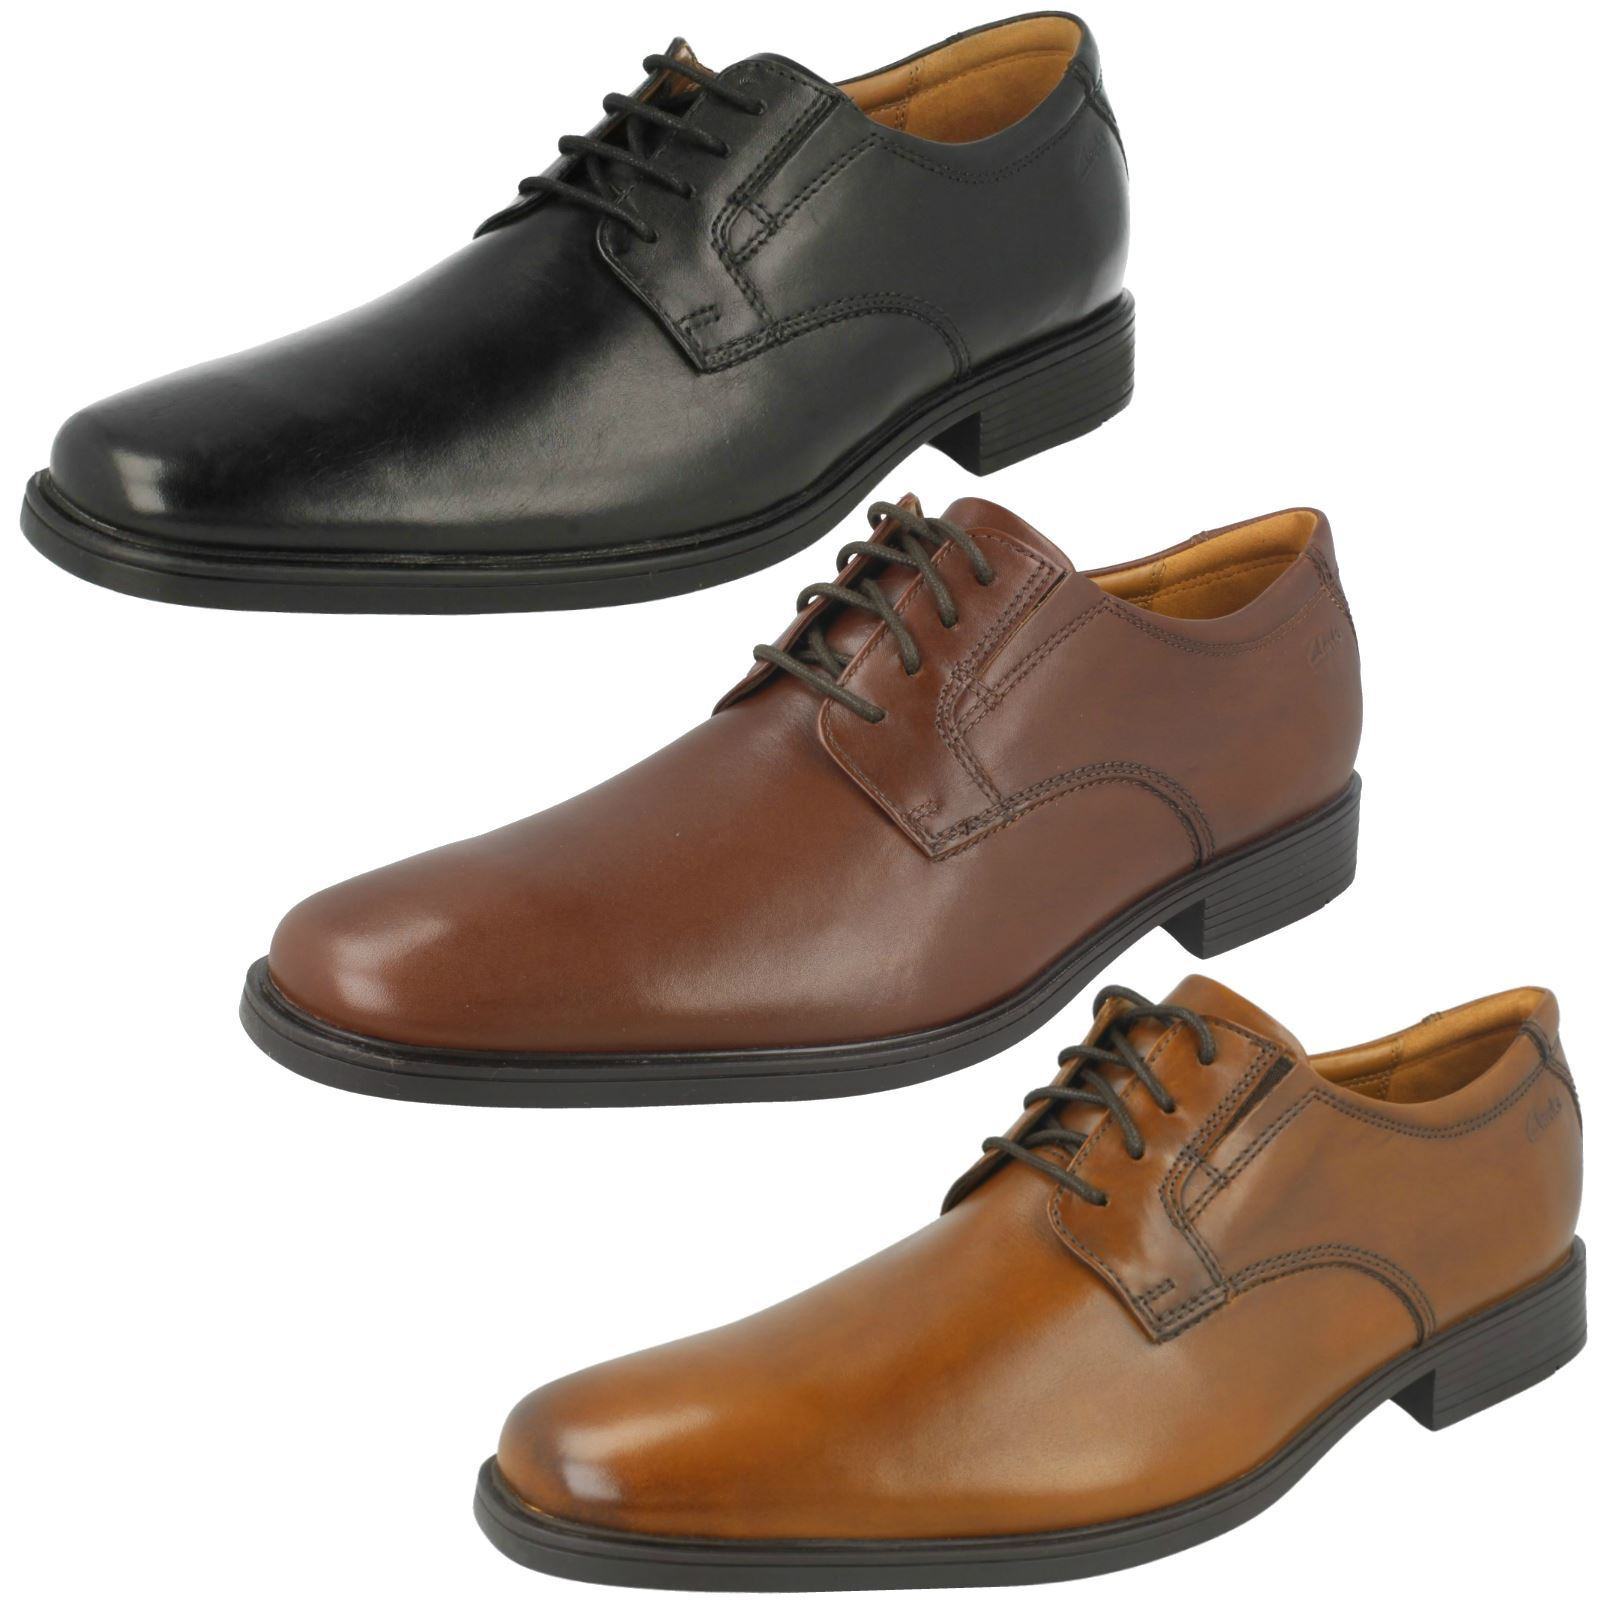 Mens Clarks Formal Lace Up shoes Tilden Plain